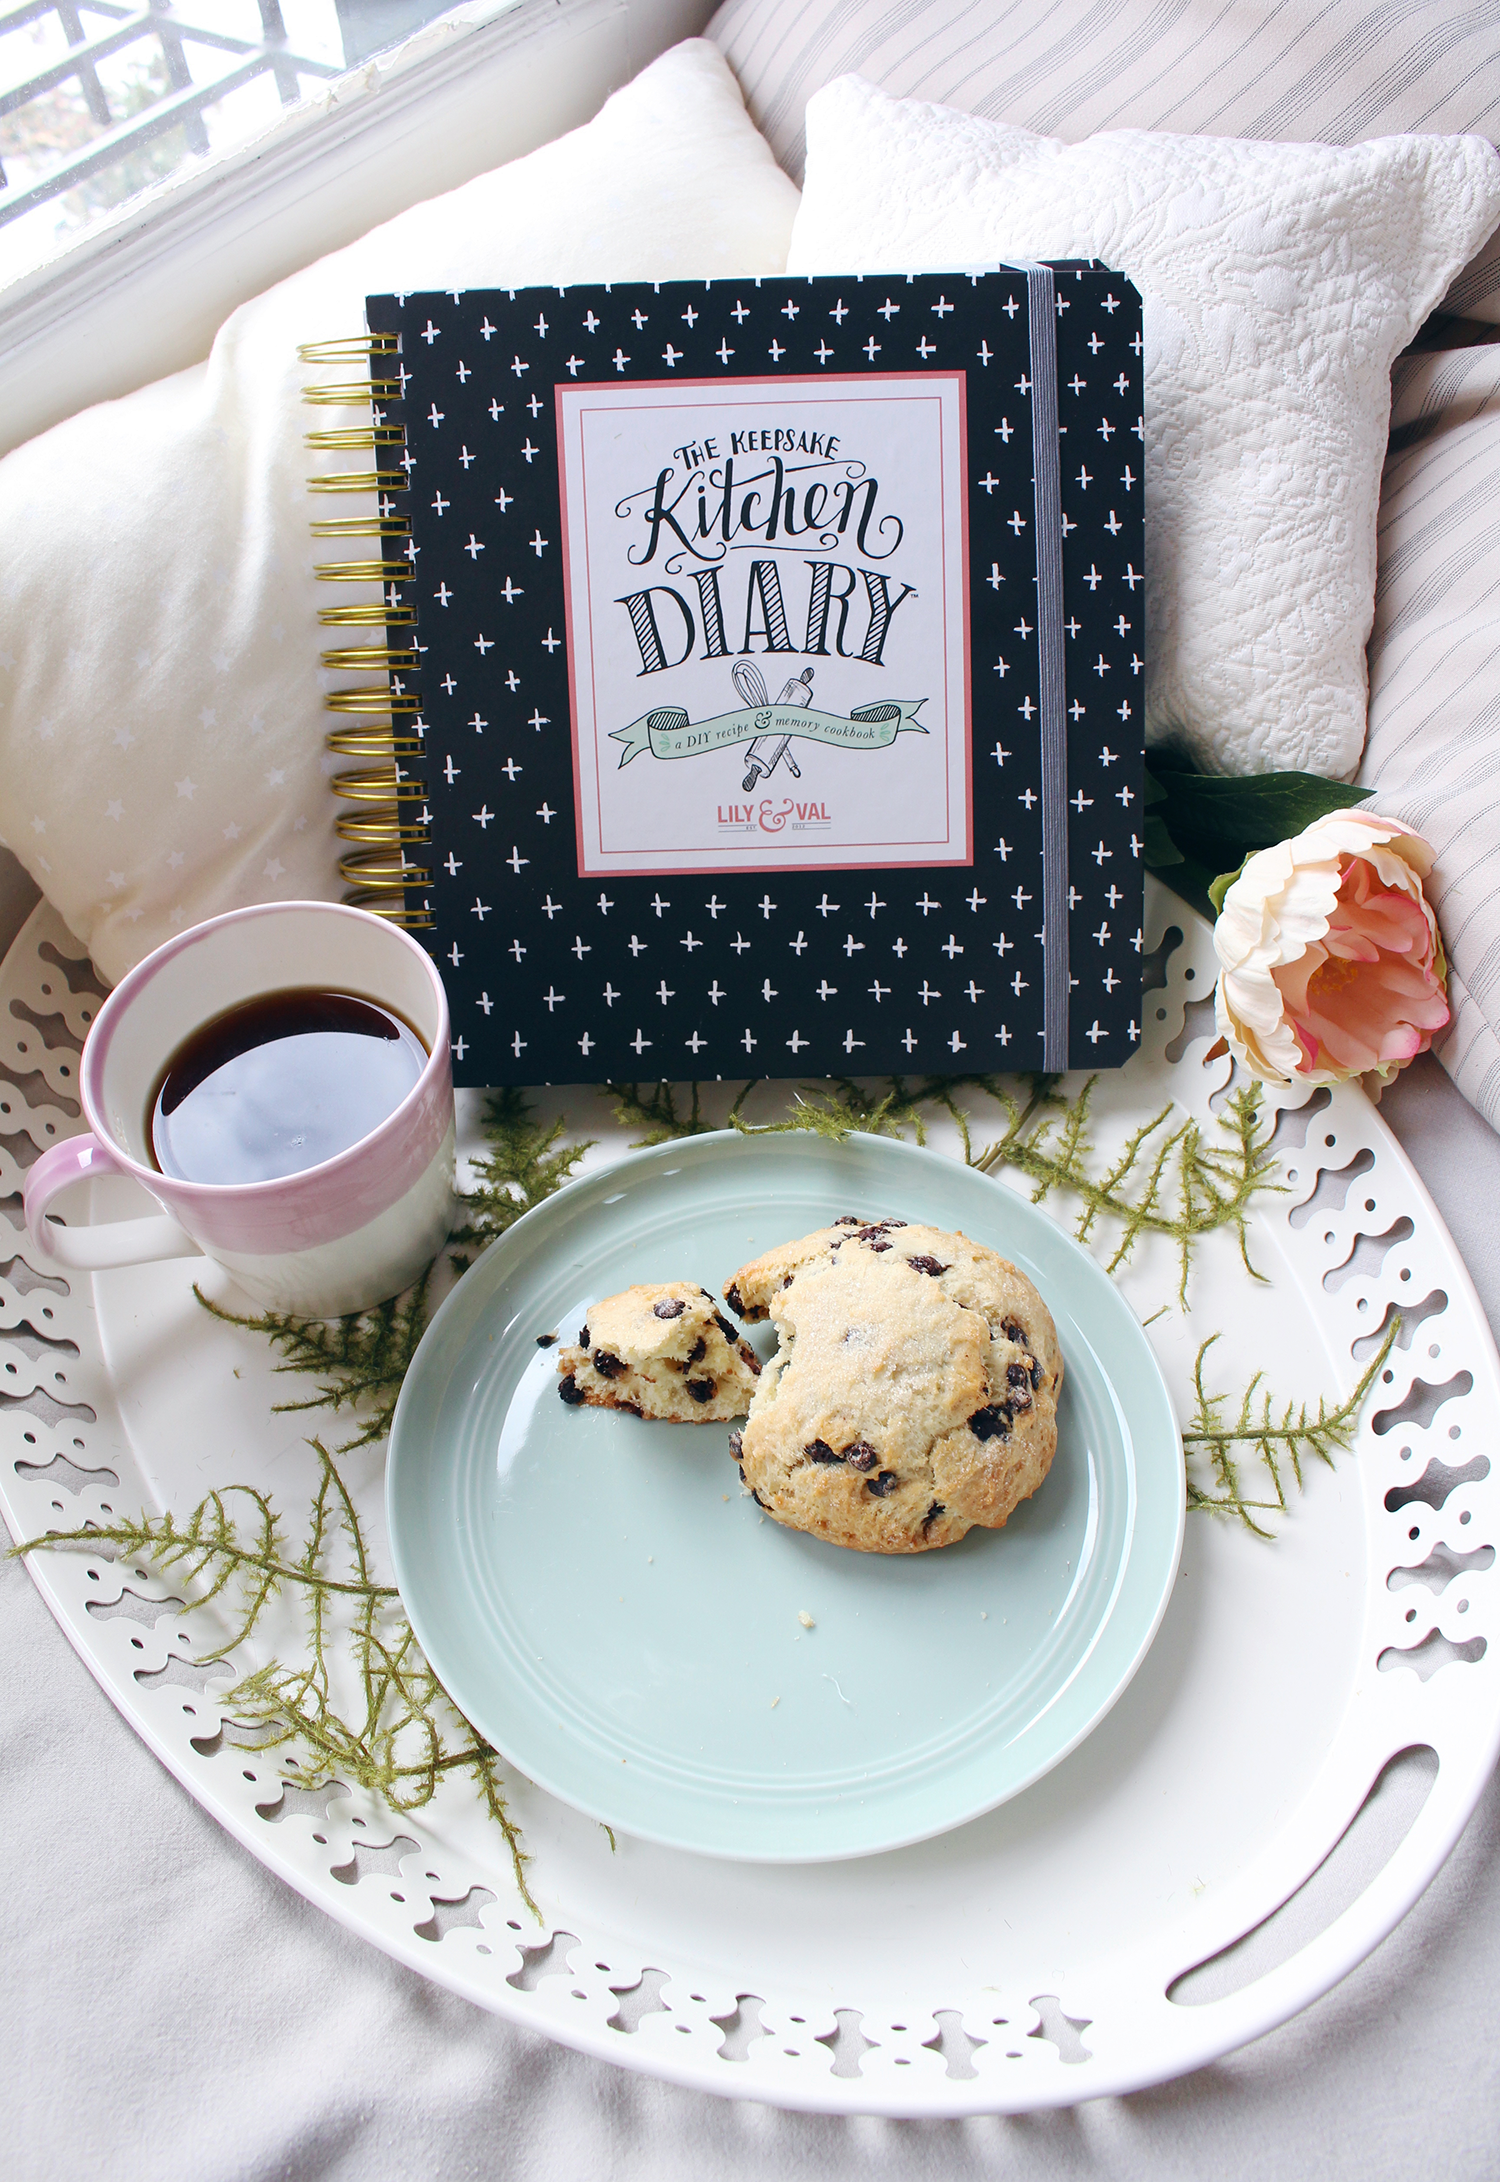 The Keepsake Kitchen Diary is an heirloom recipe keeper and journal with room to record recipes along with the memories that coincide with them